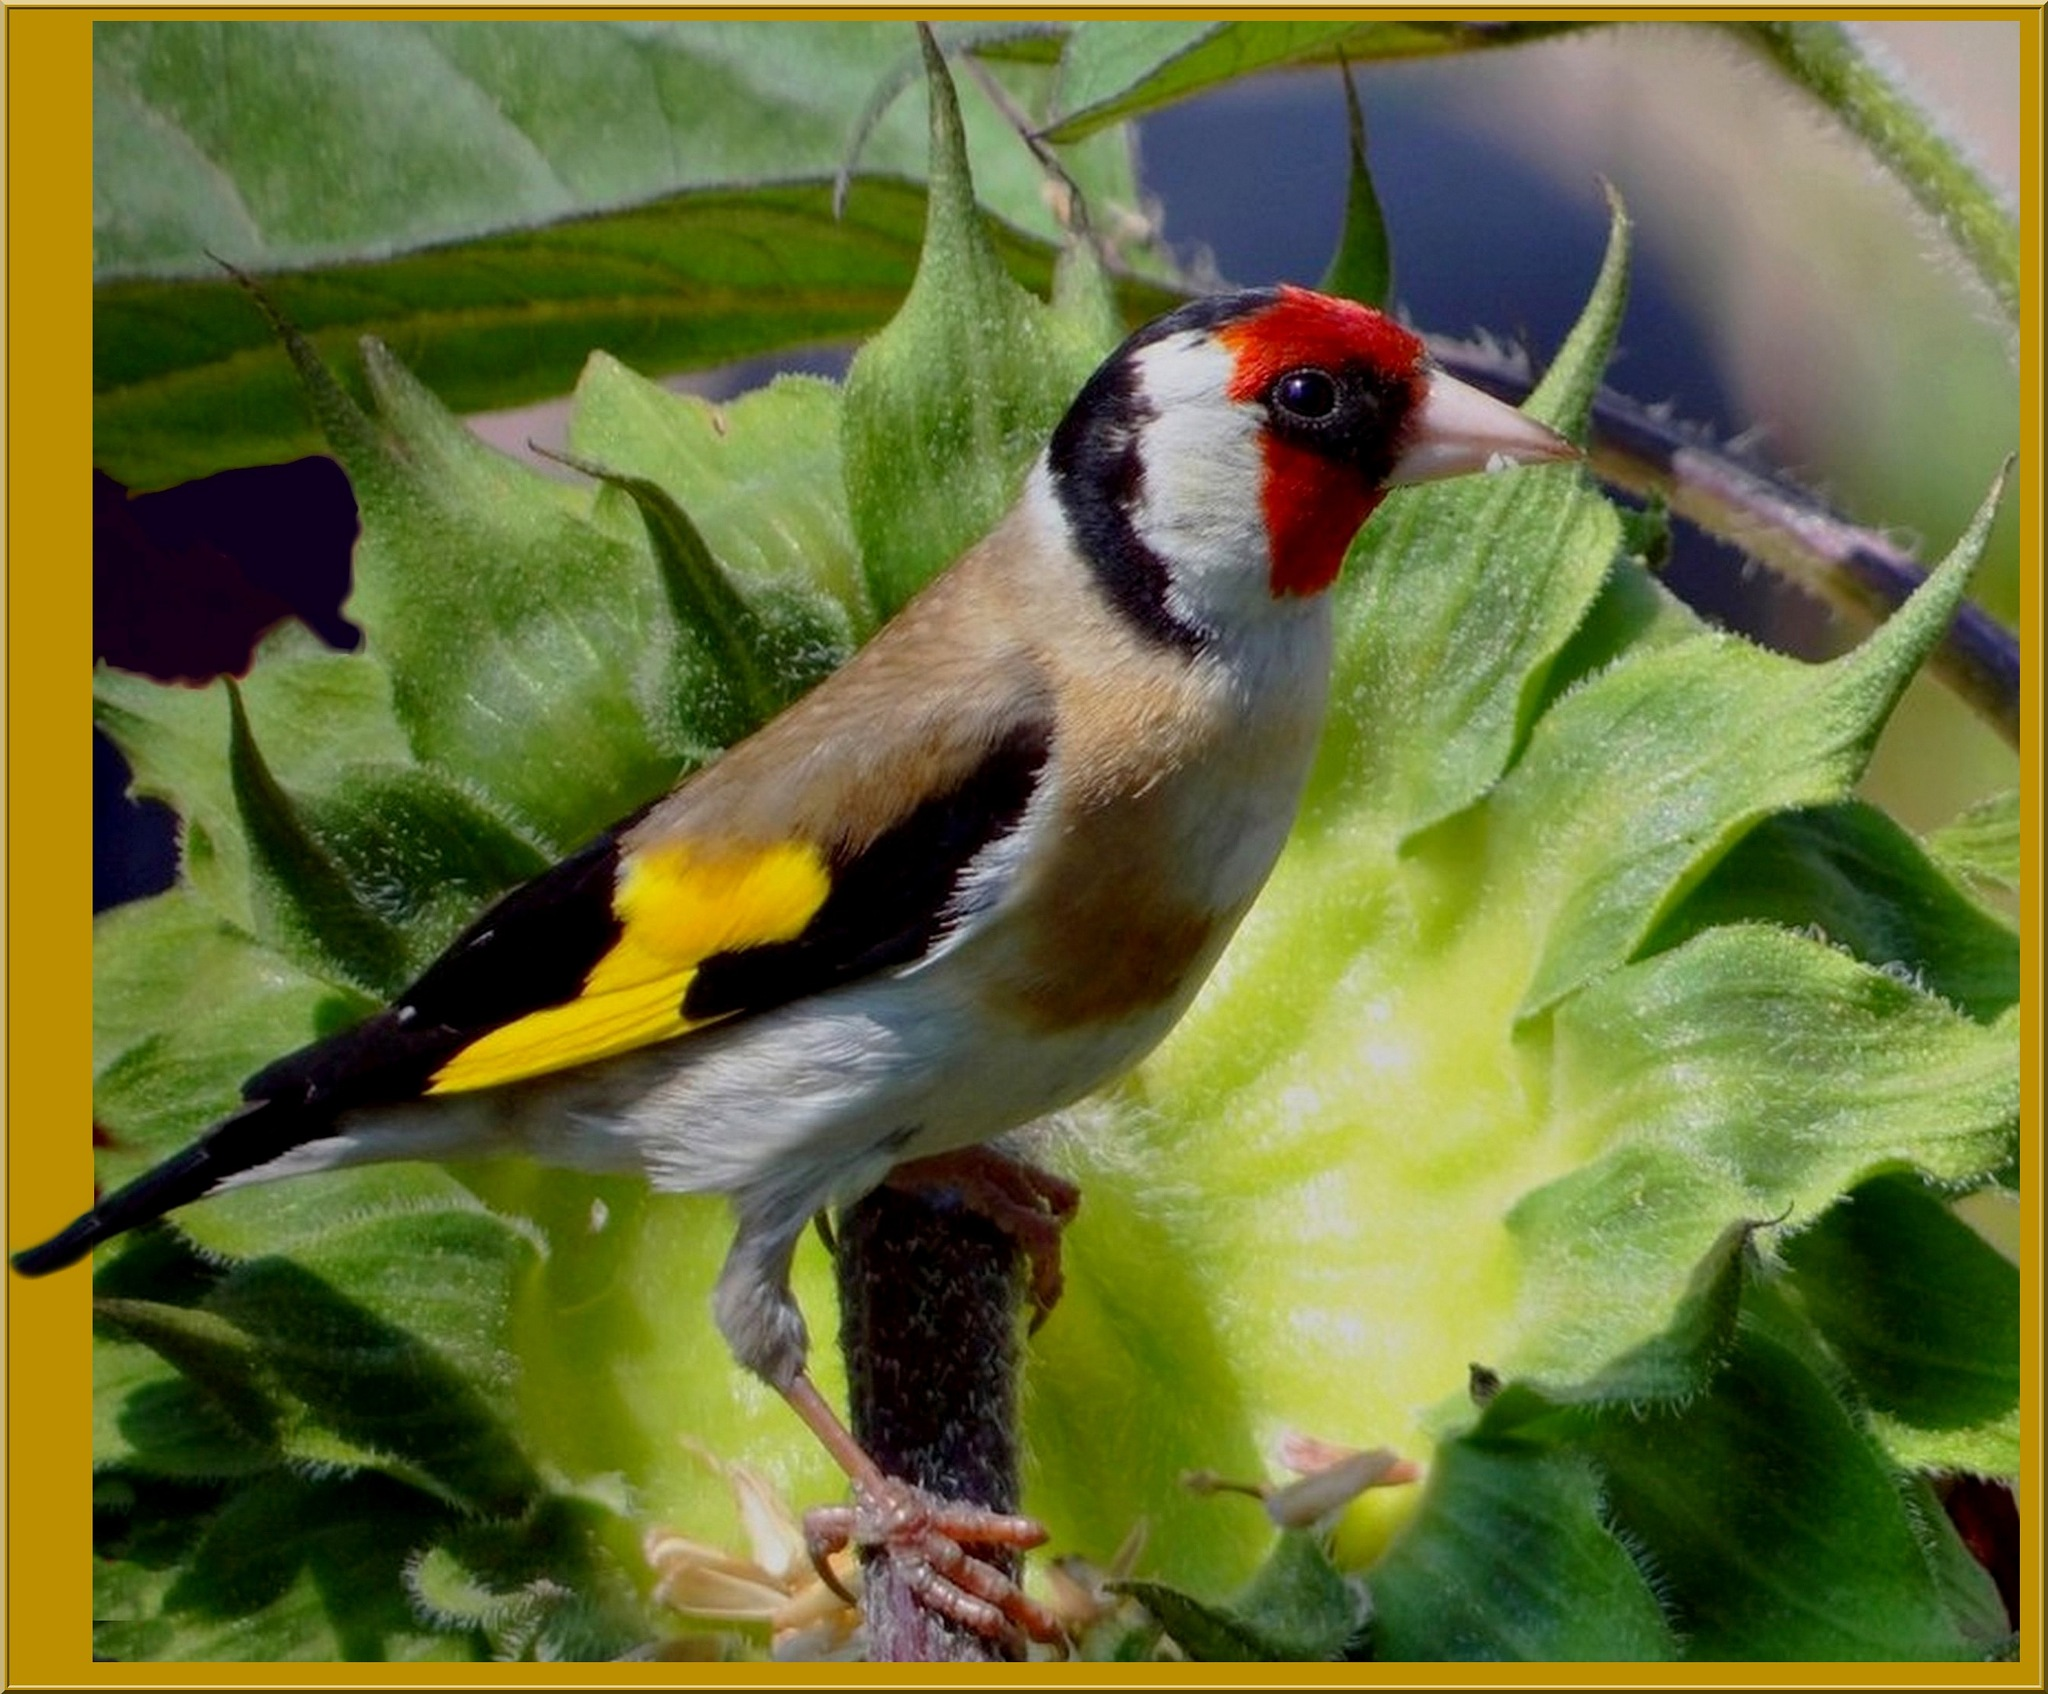 Goldfinch on sunflower blossom by Mariano Arizzi Novelli